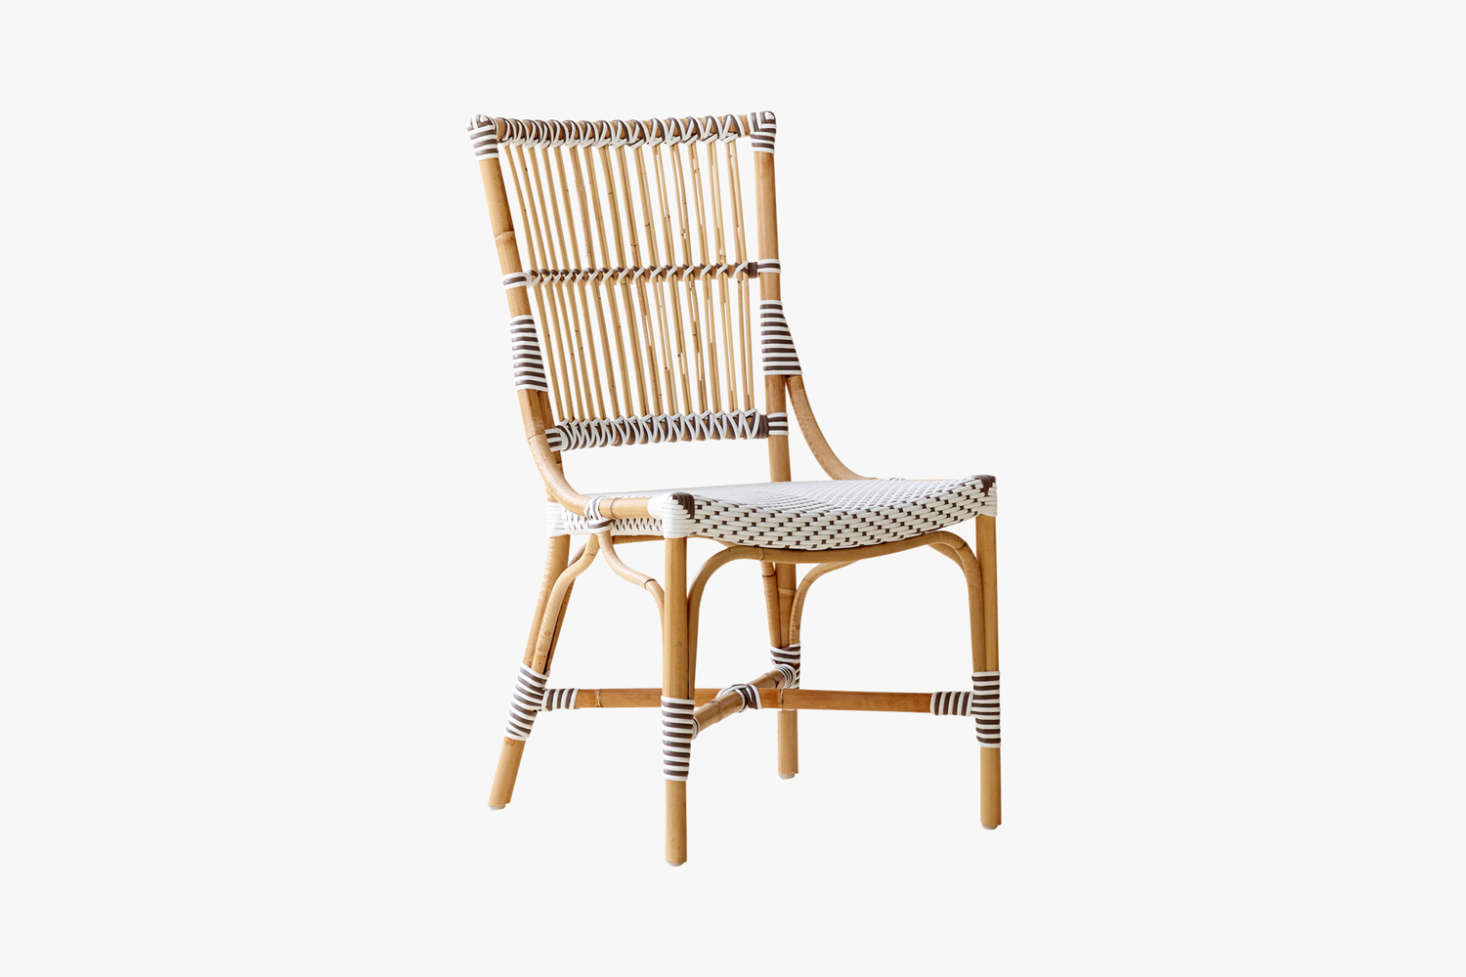 The Cappuccino Dot Monique Rattan Side Chair is $368 from Dear Keaton. It's made of rattan and synthetic fiber by Sika Design, which offers a range of bistro furniture that the company sells directly and through a number of retail sources.